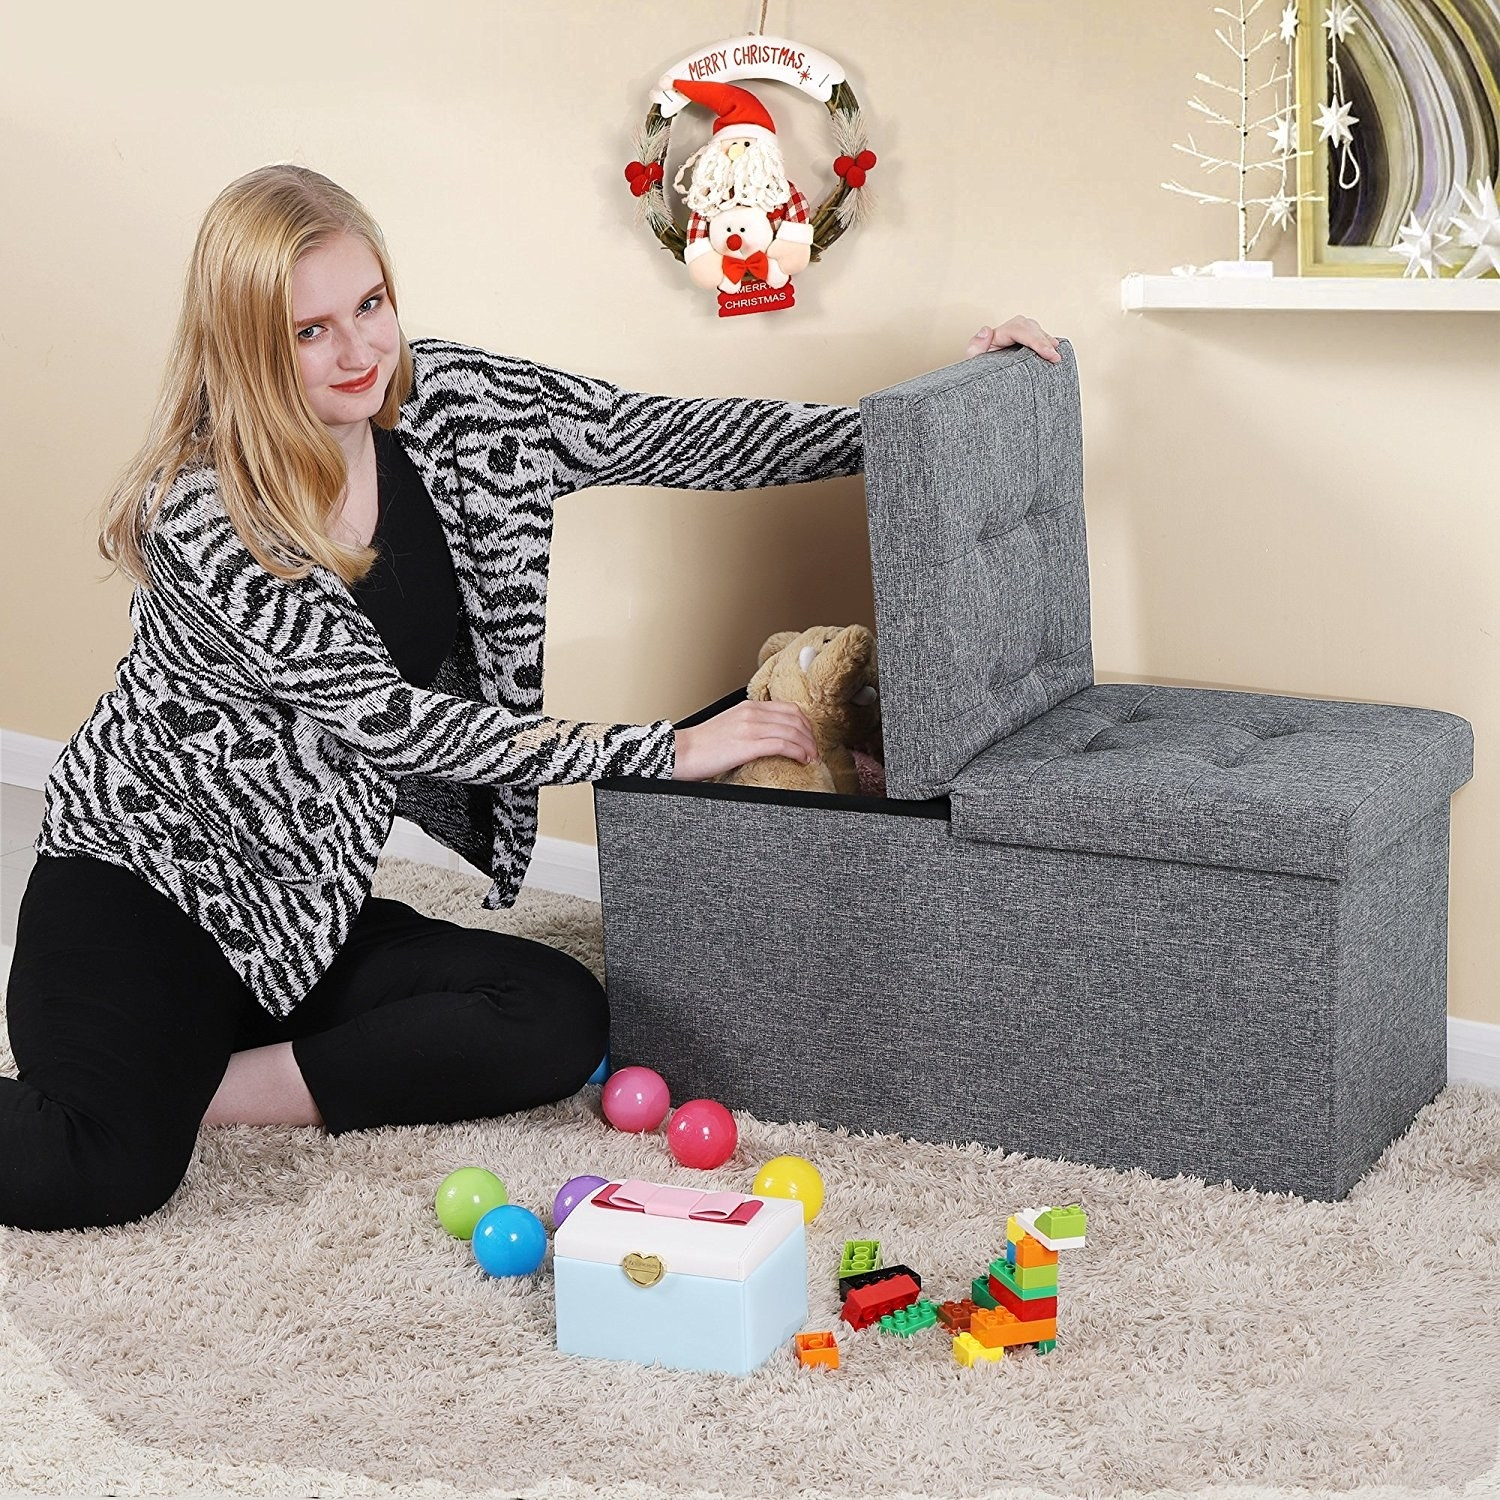 person putting toys into a storage ottoman